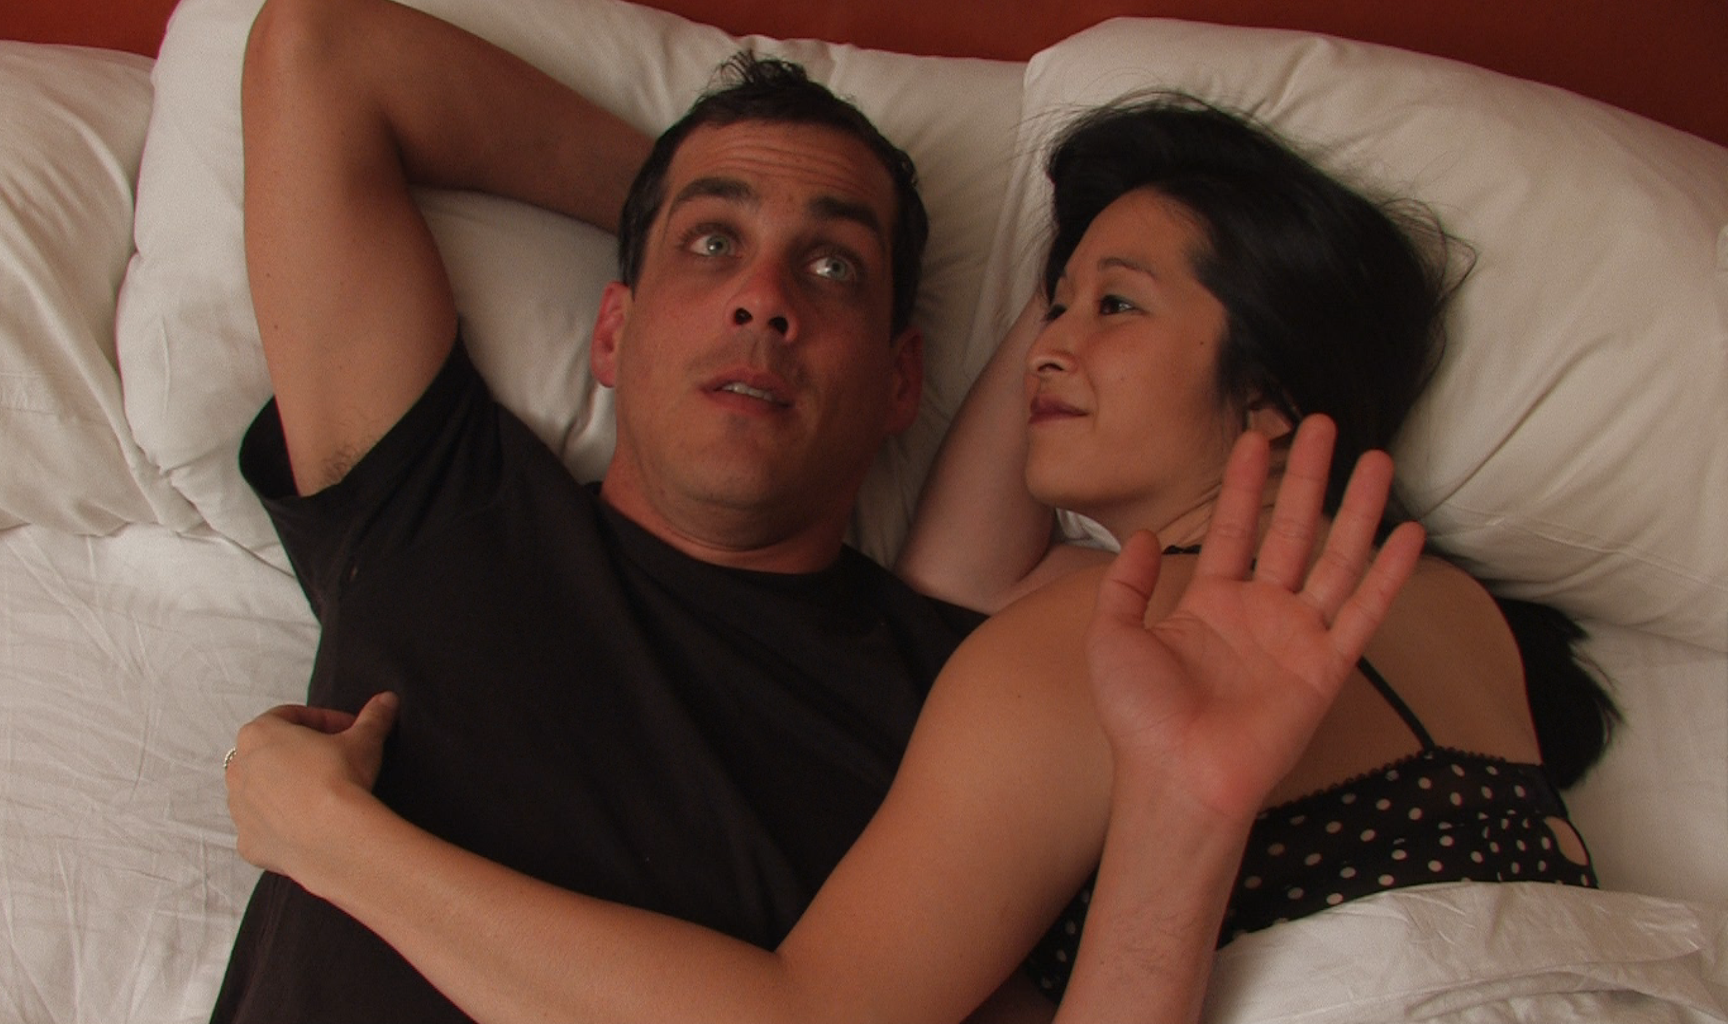 2_DYKA_Amanda_Charr_and_Bryce_Flint-Somerville_bed